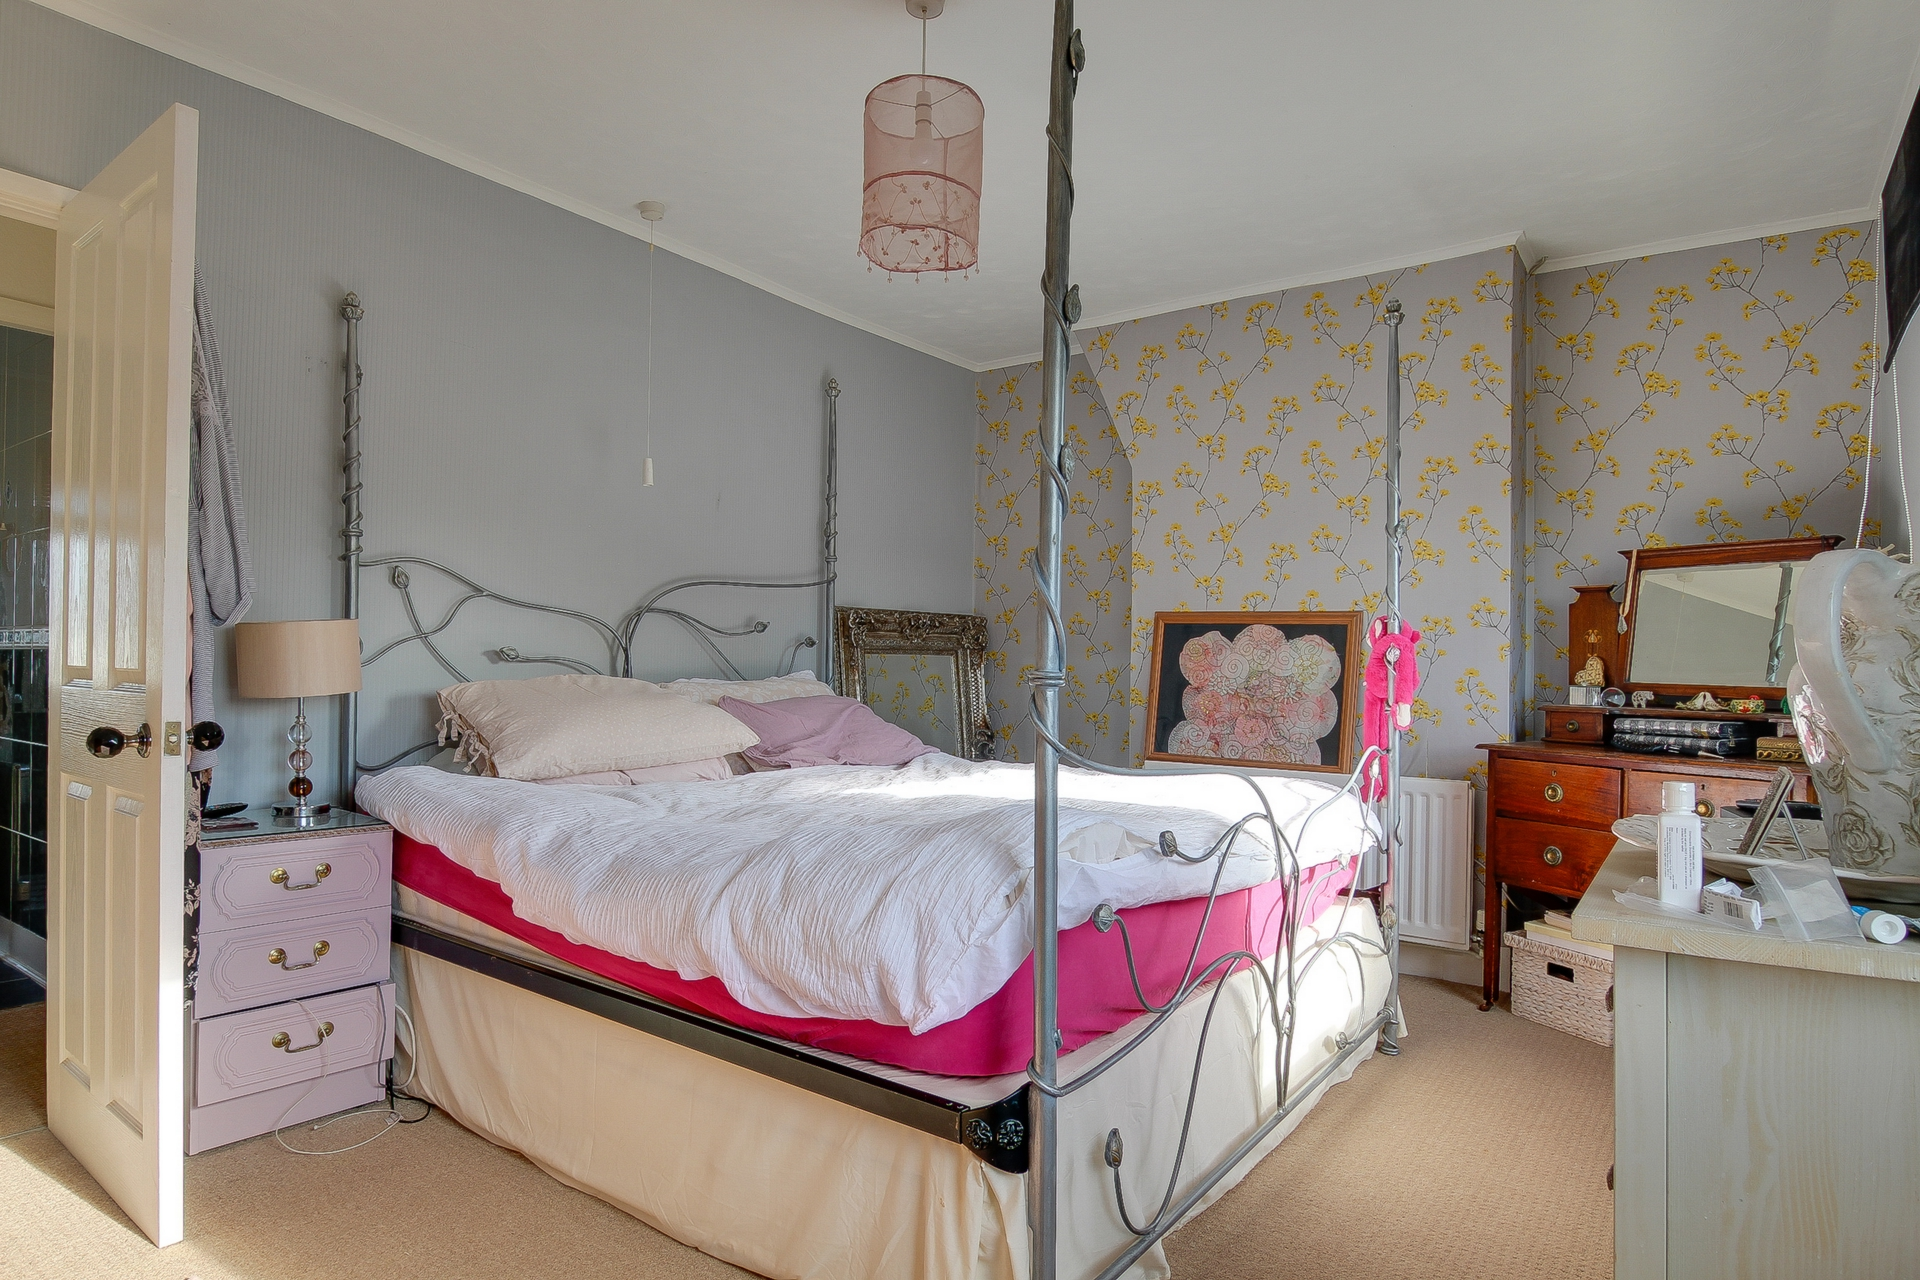 2 bed house for sale in Gordon Square, Birchington, CT7 5